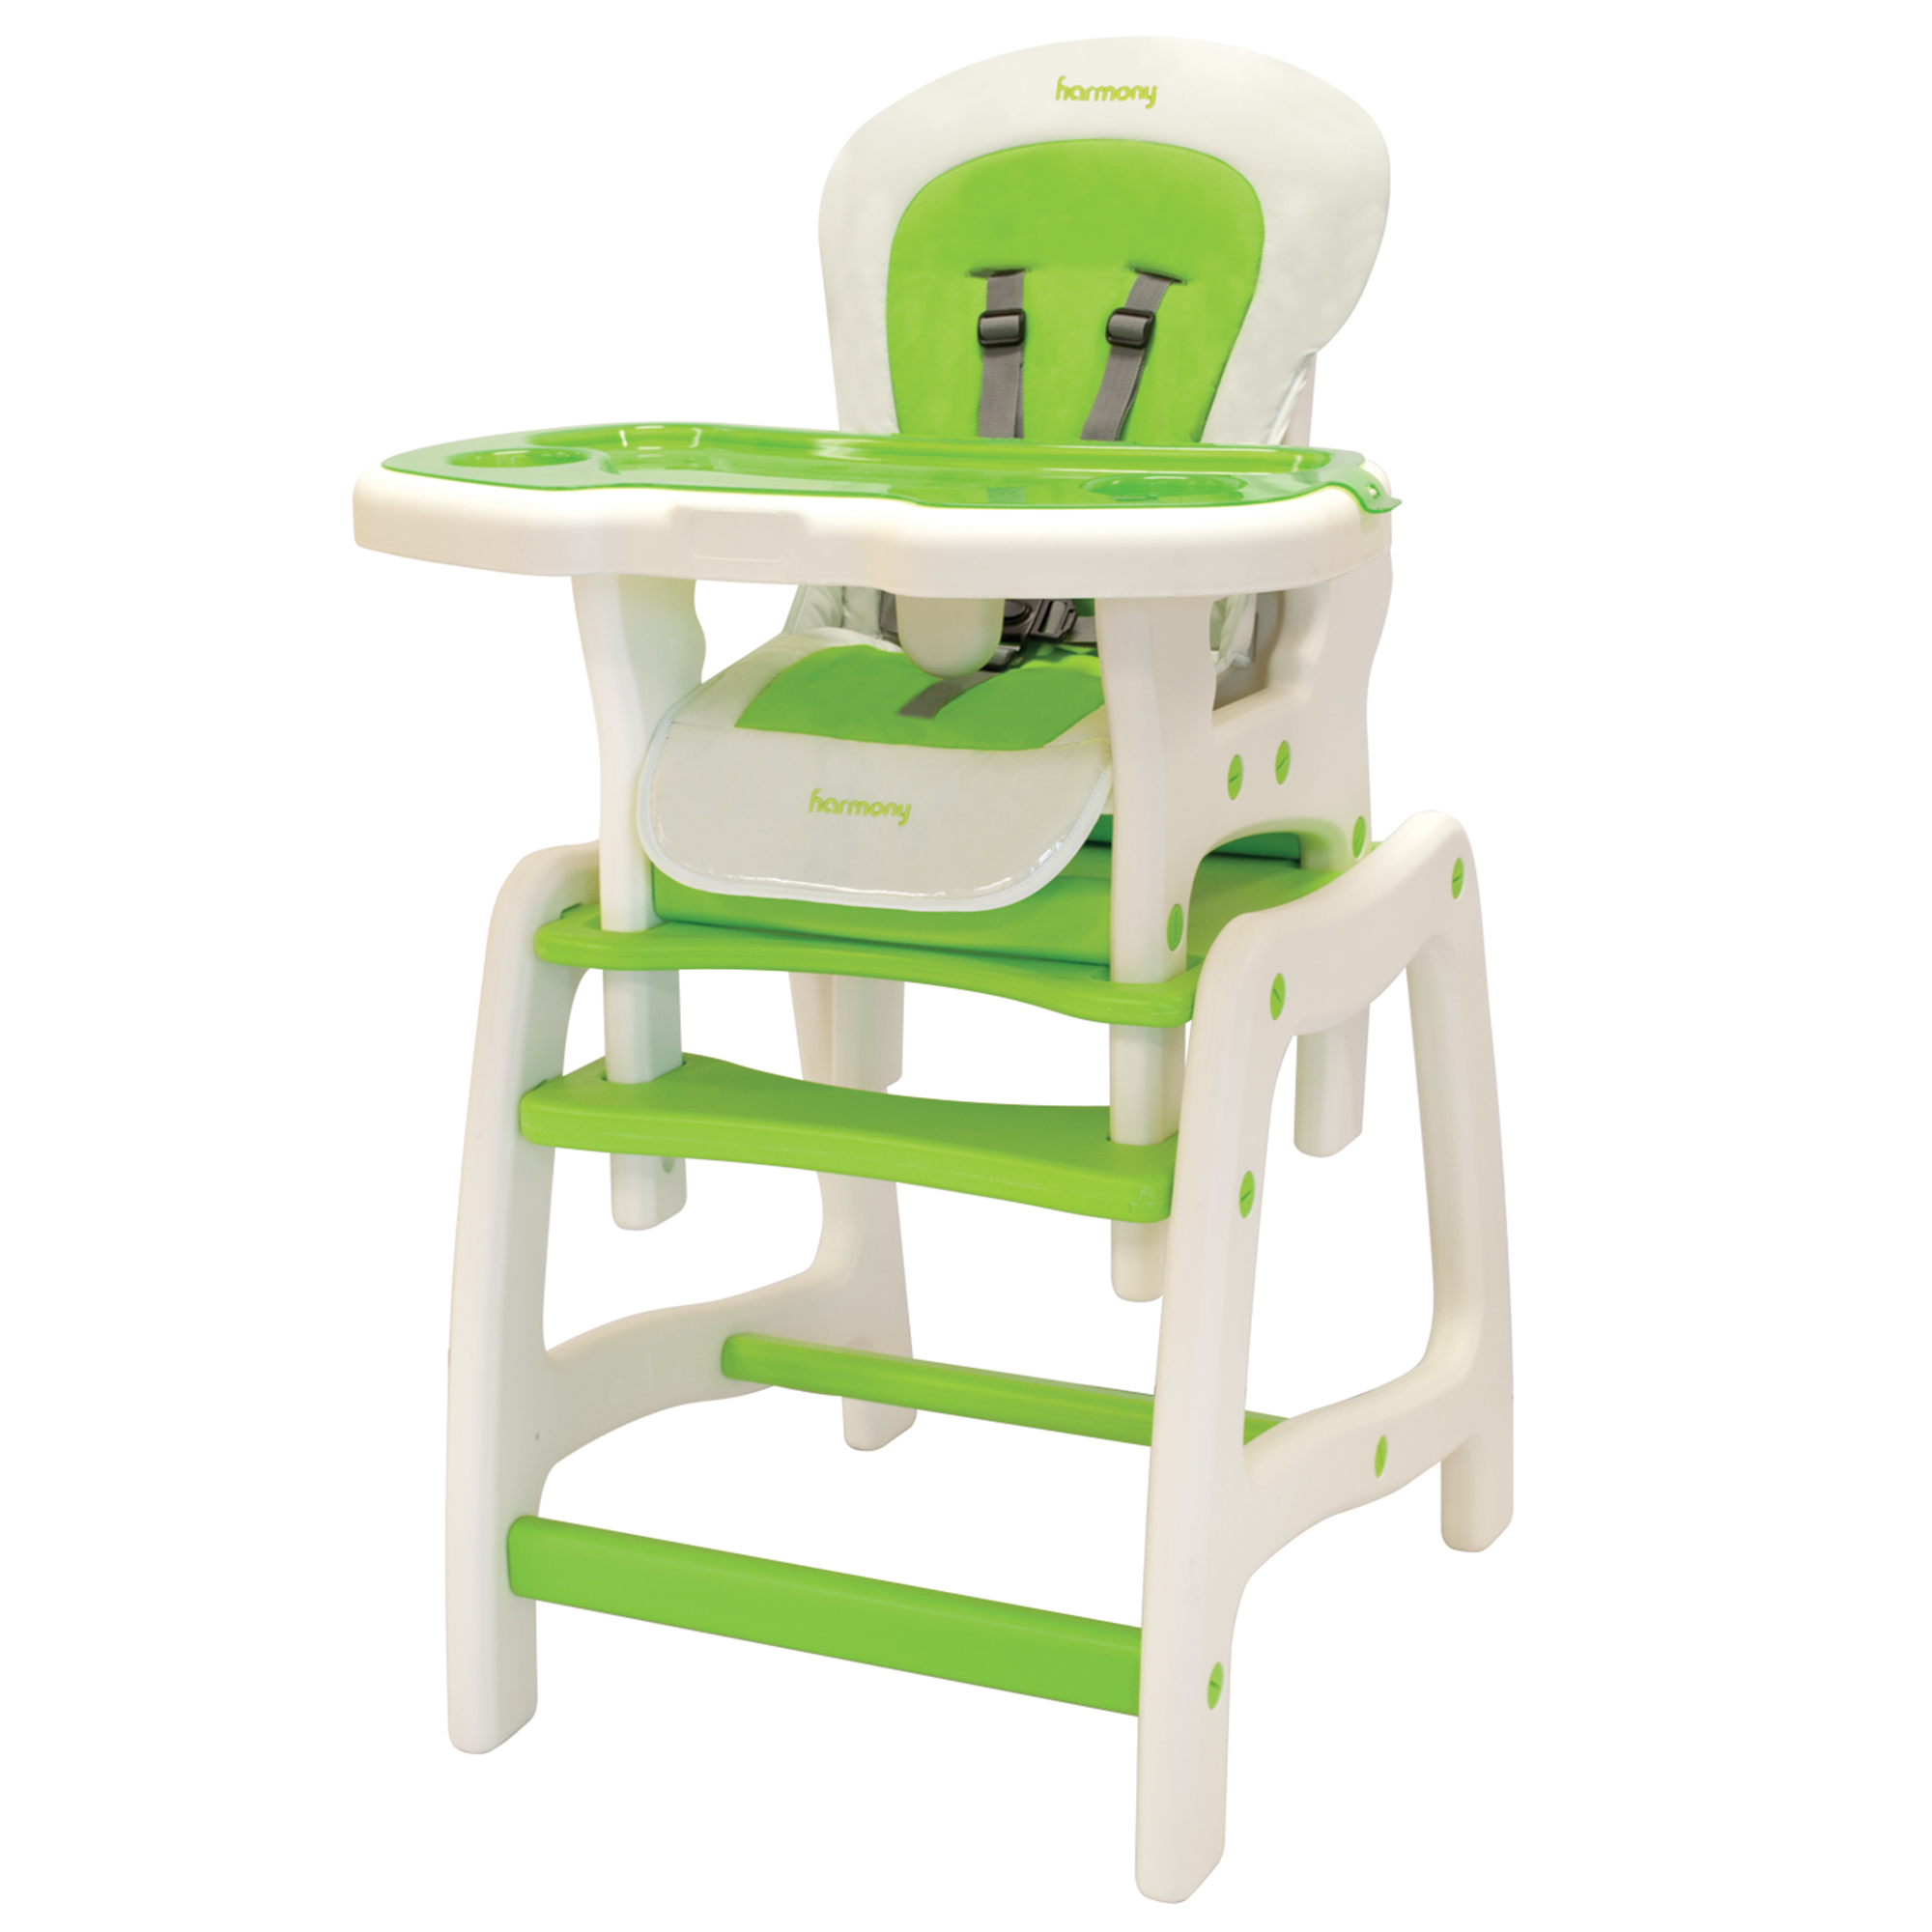 Baby Play Chair Harmony Eat And Play 4 In 1 Combination High Chair Activity